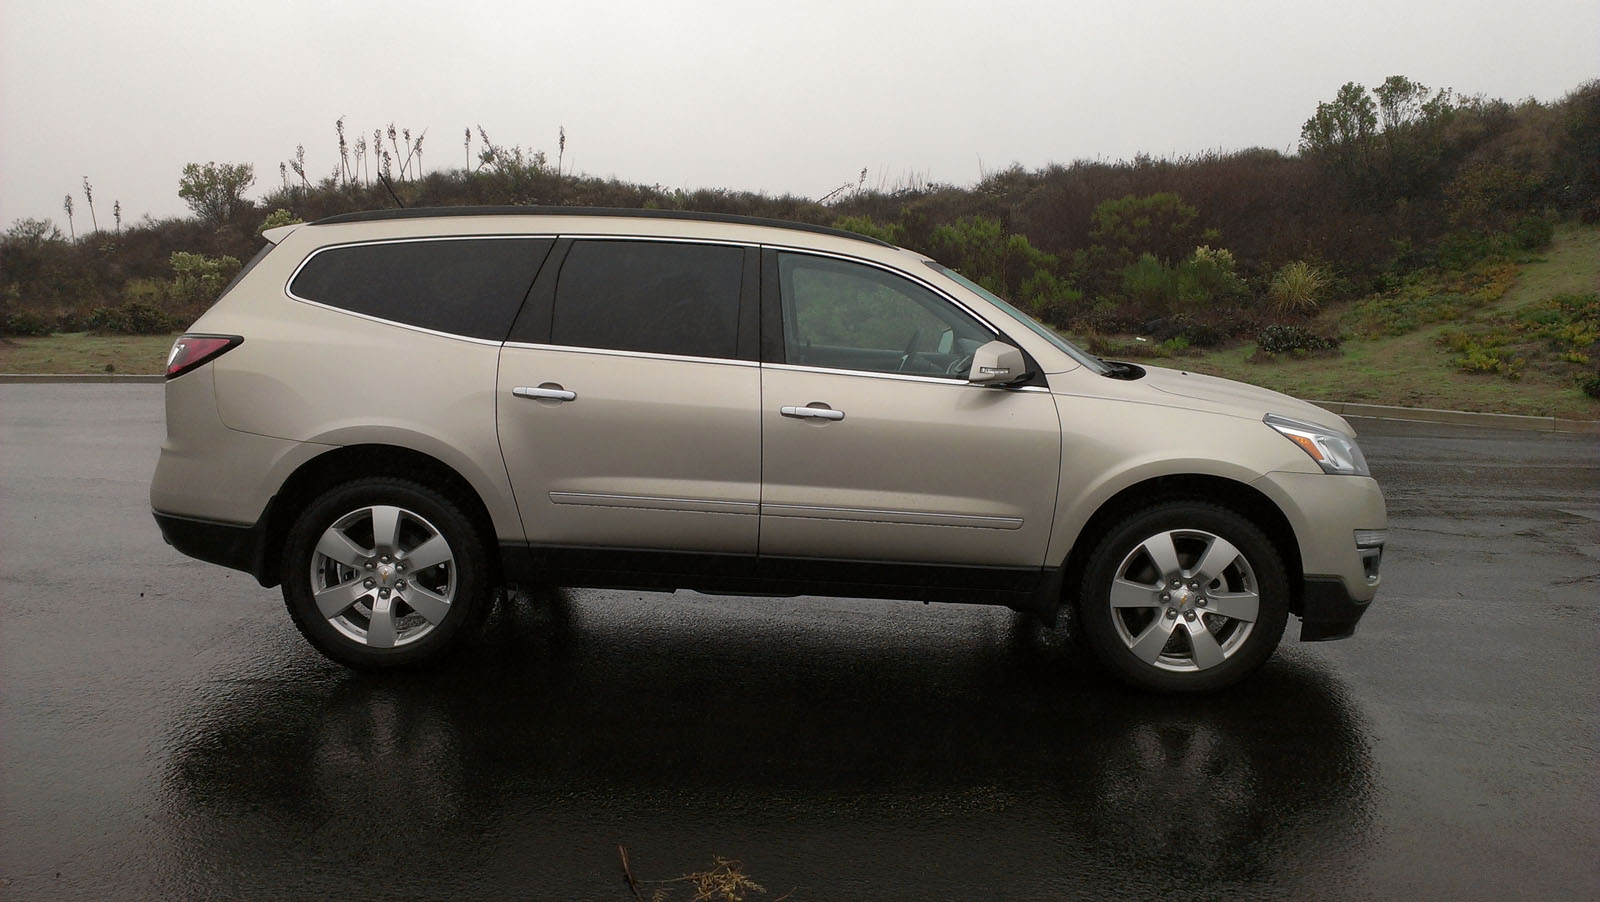 Chevrolet traverse 2013 photo - 4